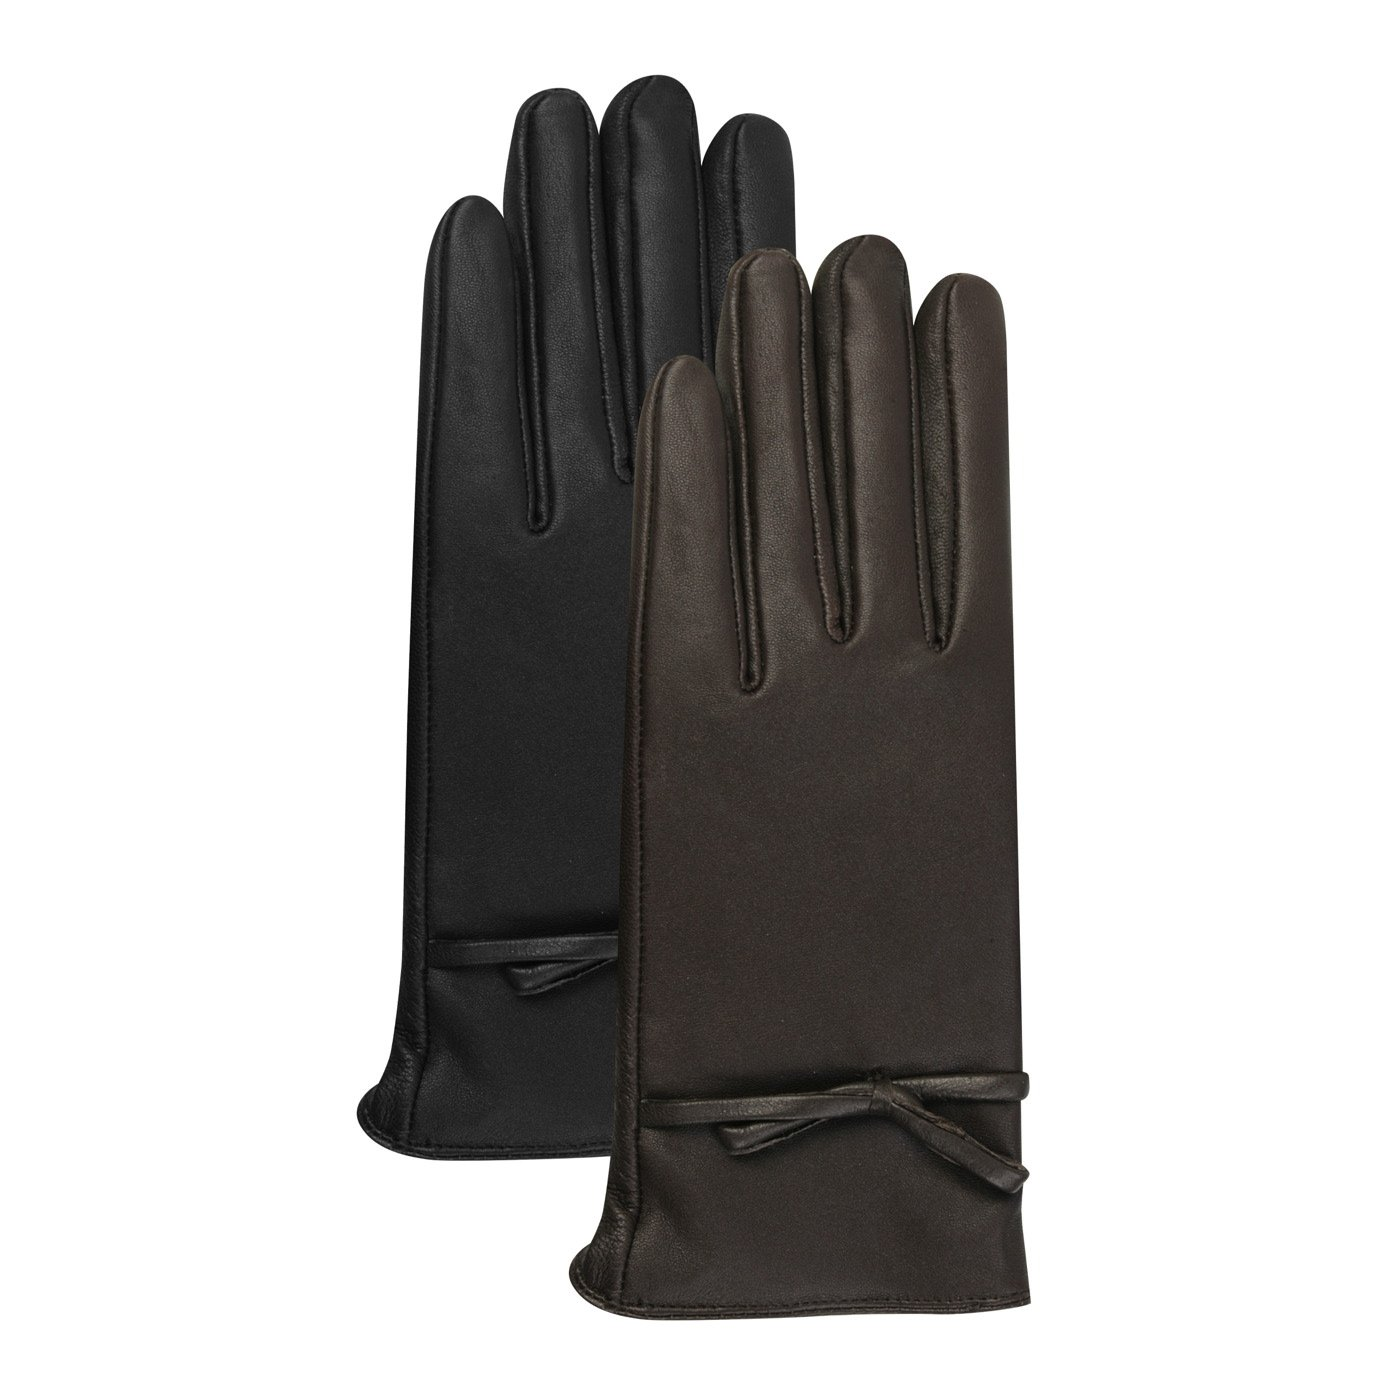 Luxury Lane Women's Cashmere Lined Lambskin Leather Gloves with Bow - Chocolate Large